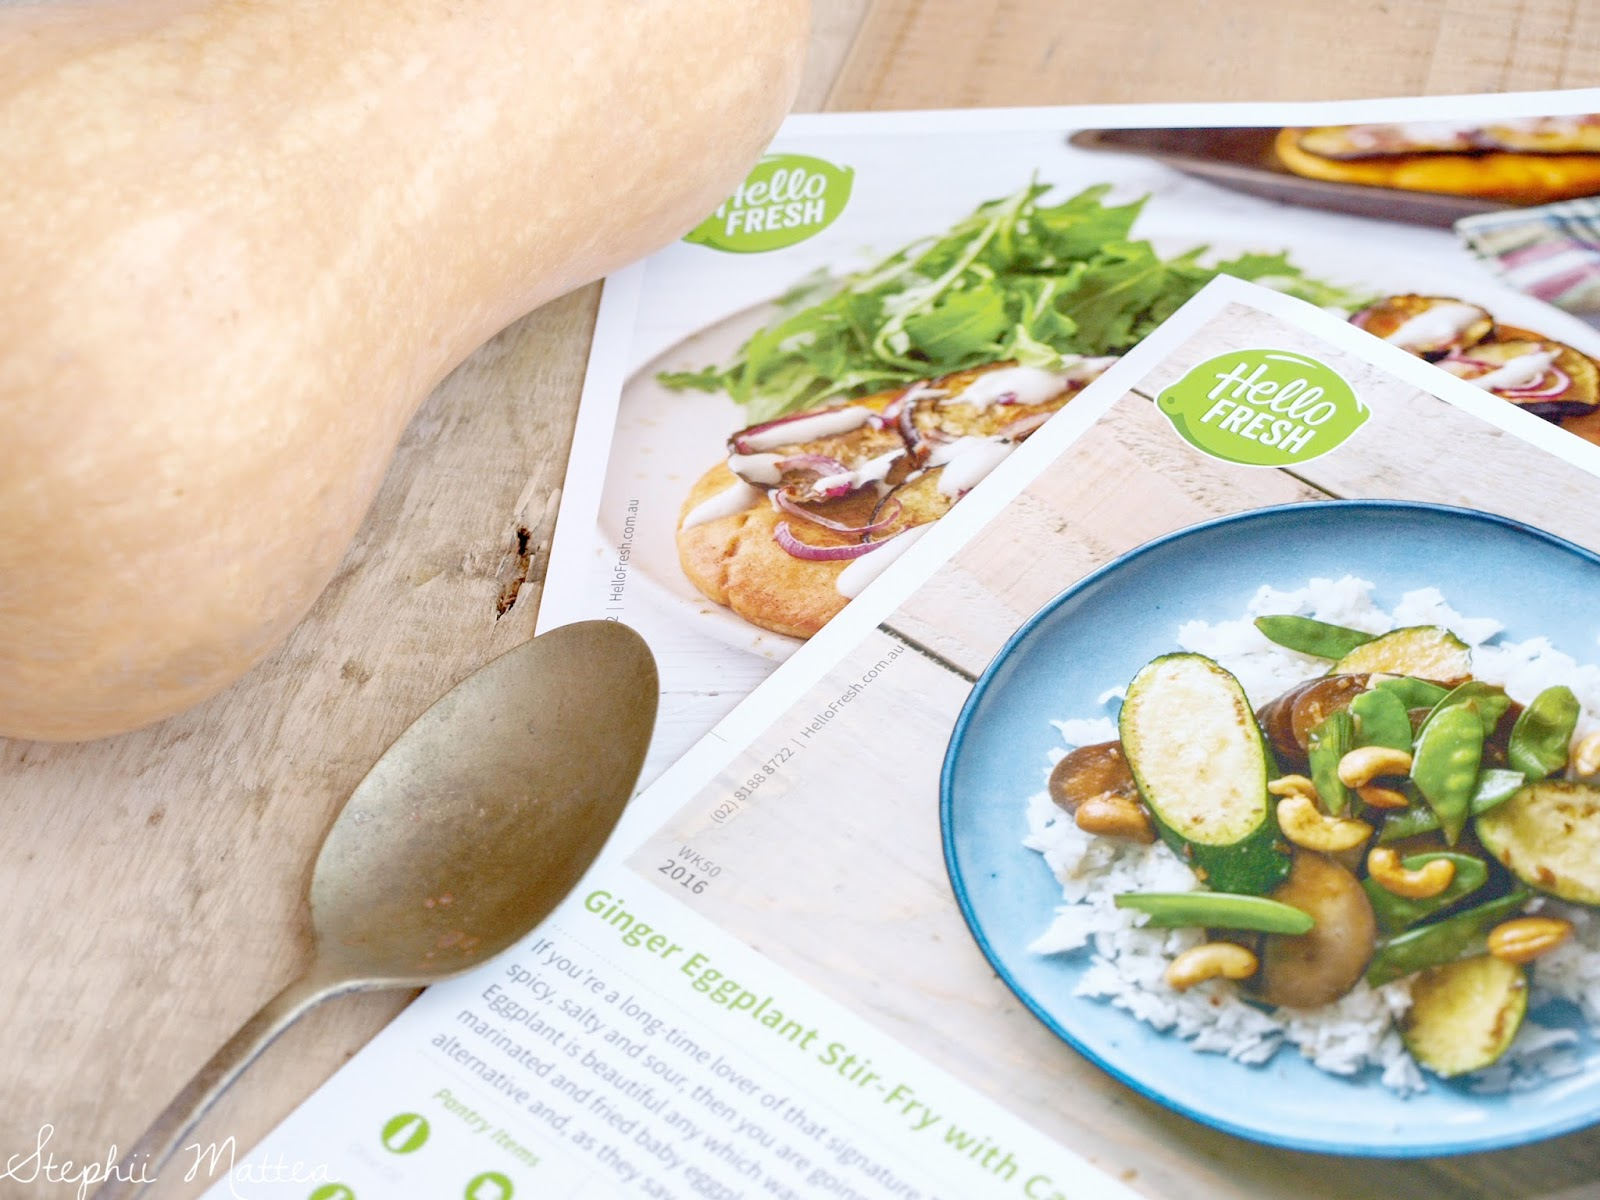 Buy Ebay  Meal Kit Delivery Service Hellofresh